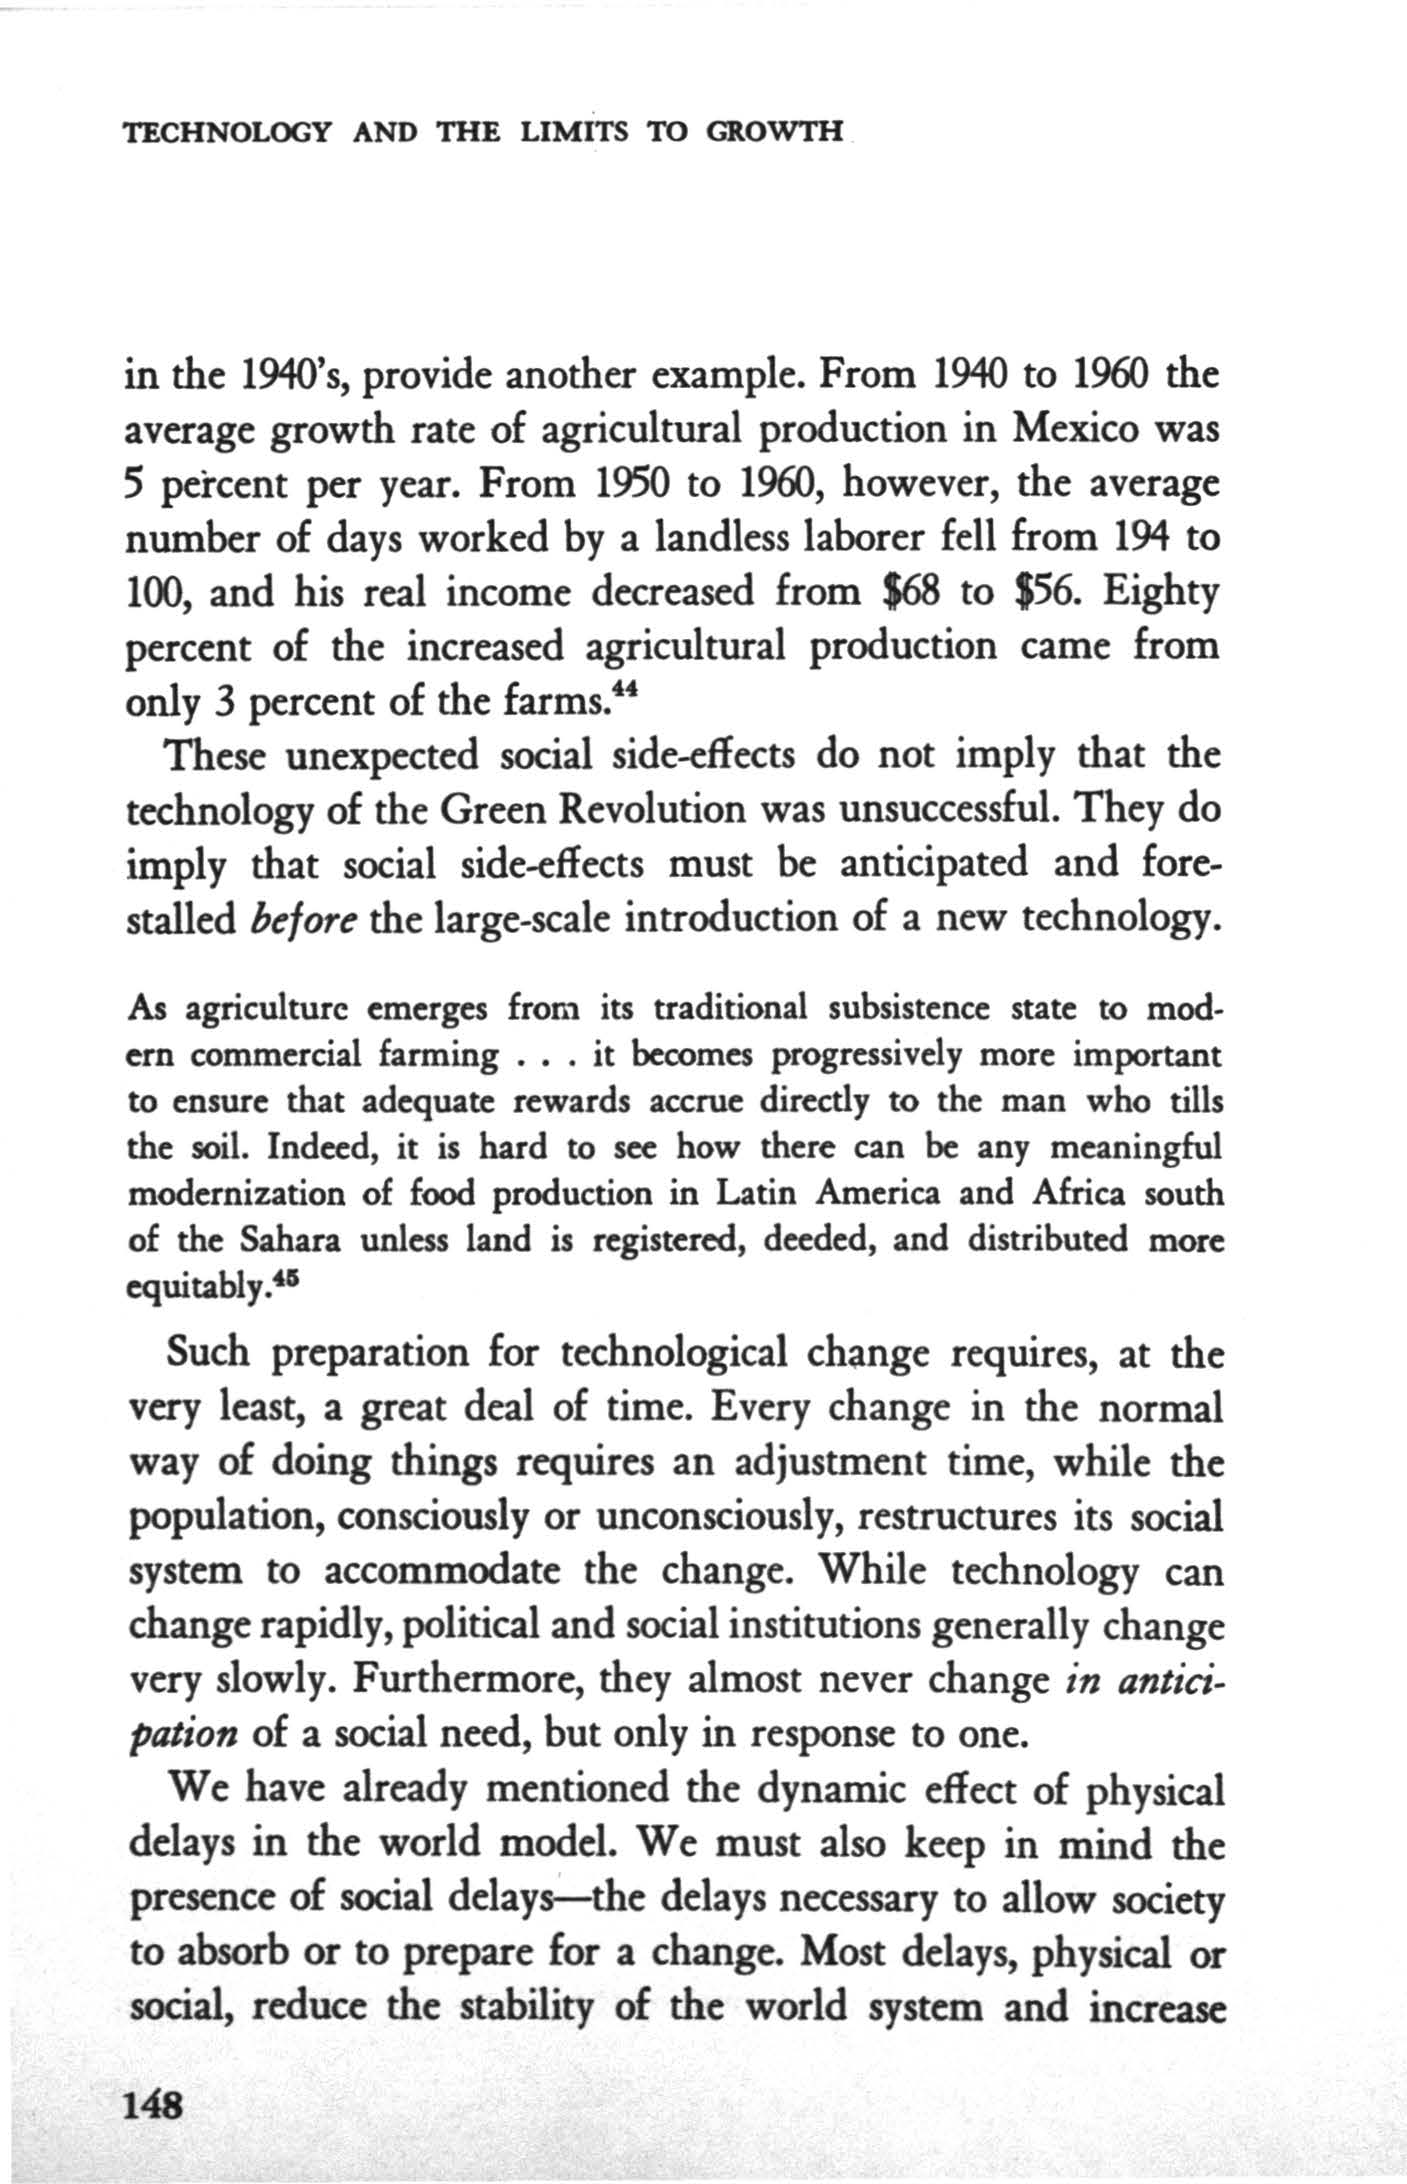 TECHNOLOGY AND THE LMTS TO GROWTH in the 1940's, provide another example. From 1940 to 1960 the average growth rate of agricultural production in Mexico was 5 percent per year.